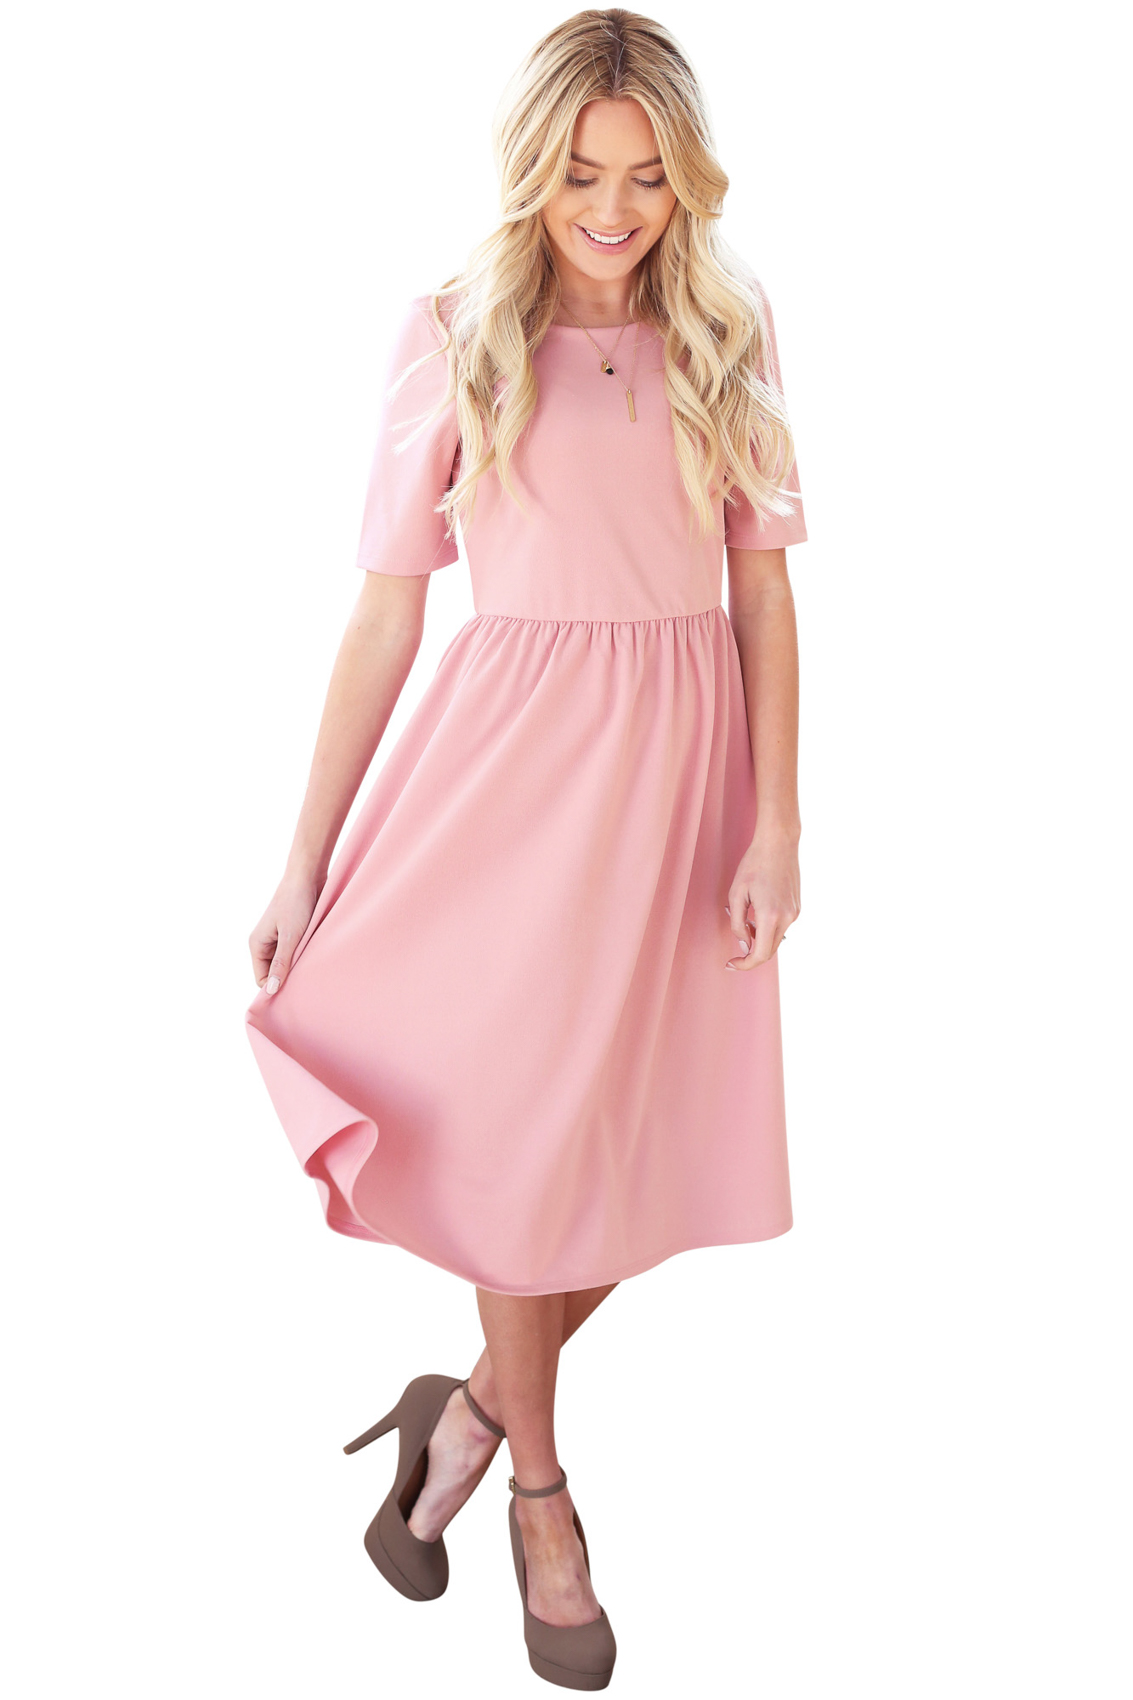 Cocktail dress for women over 30